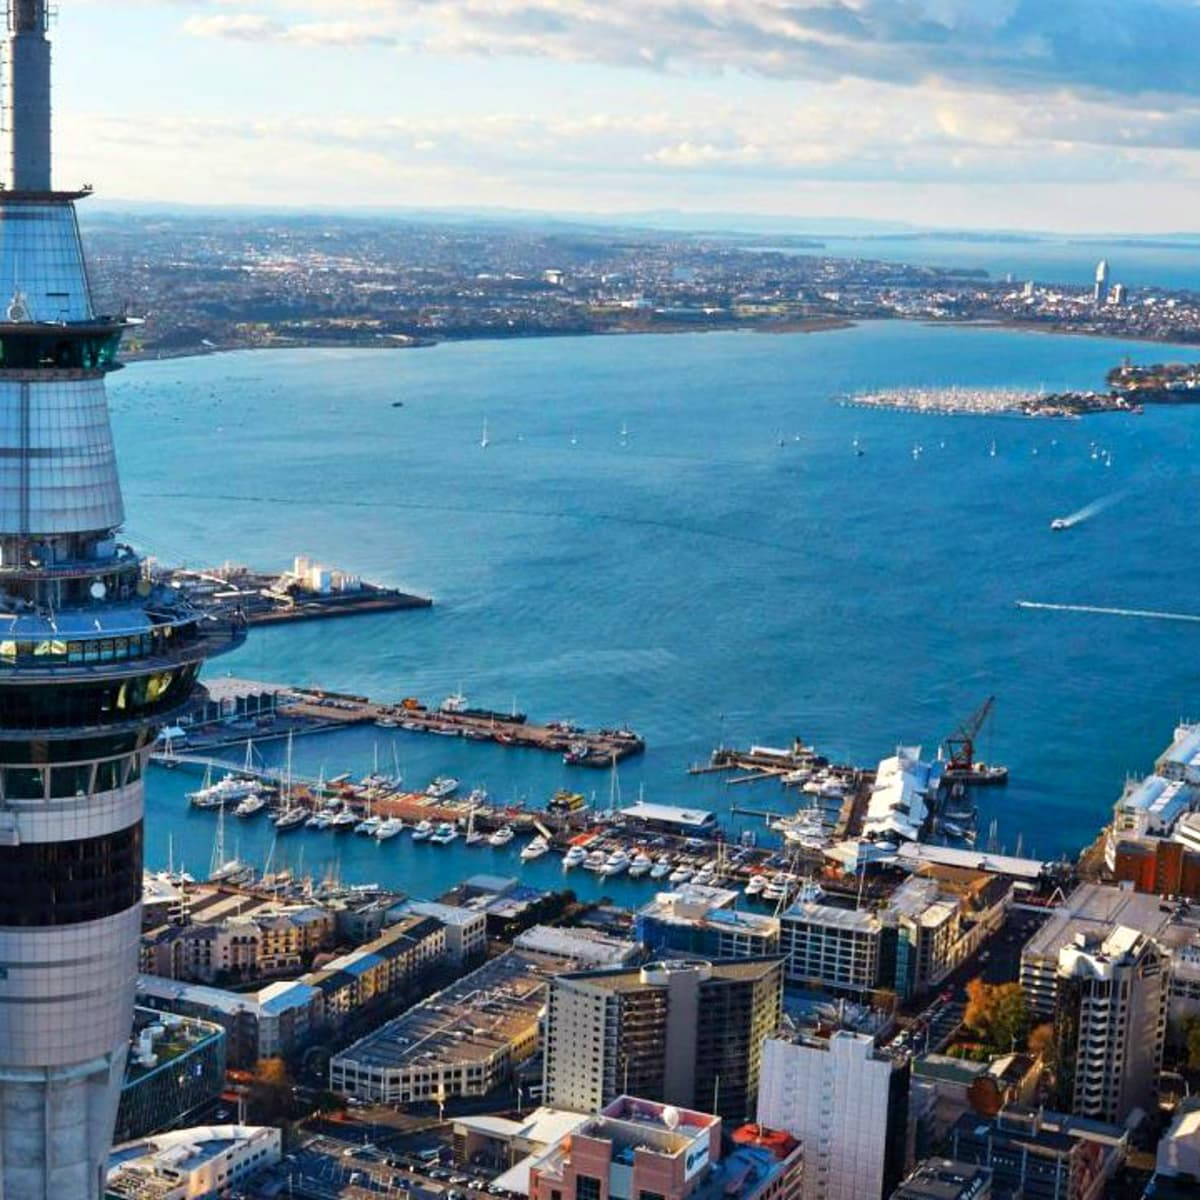 Sky Tower Auckland New Zealand aerial